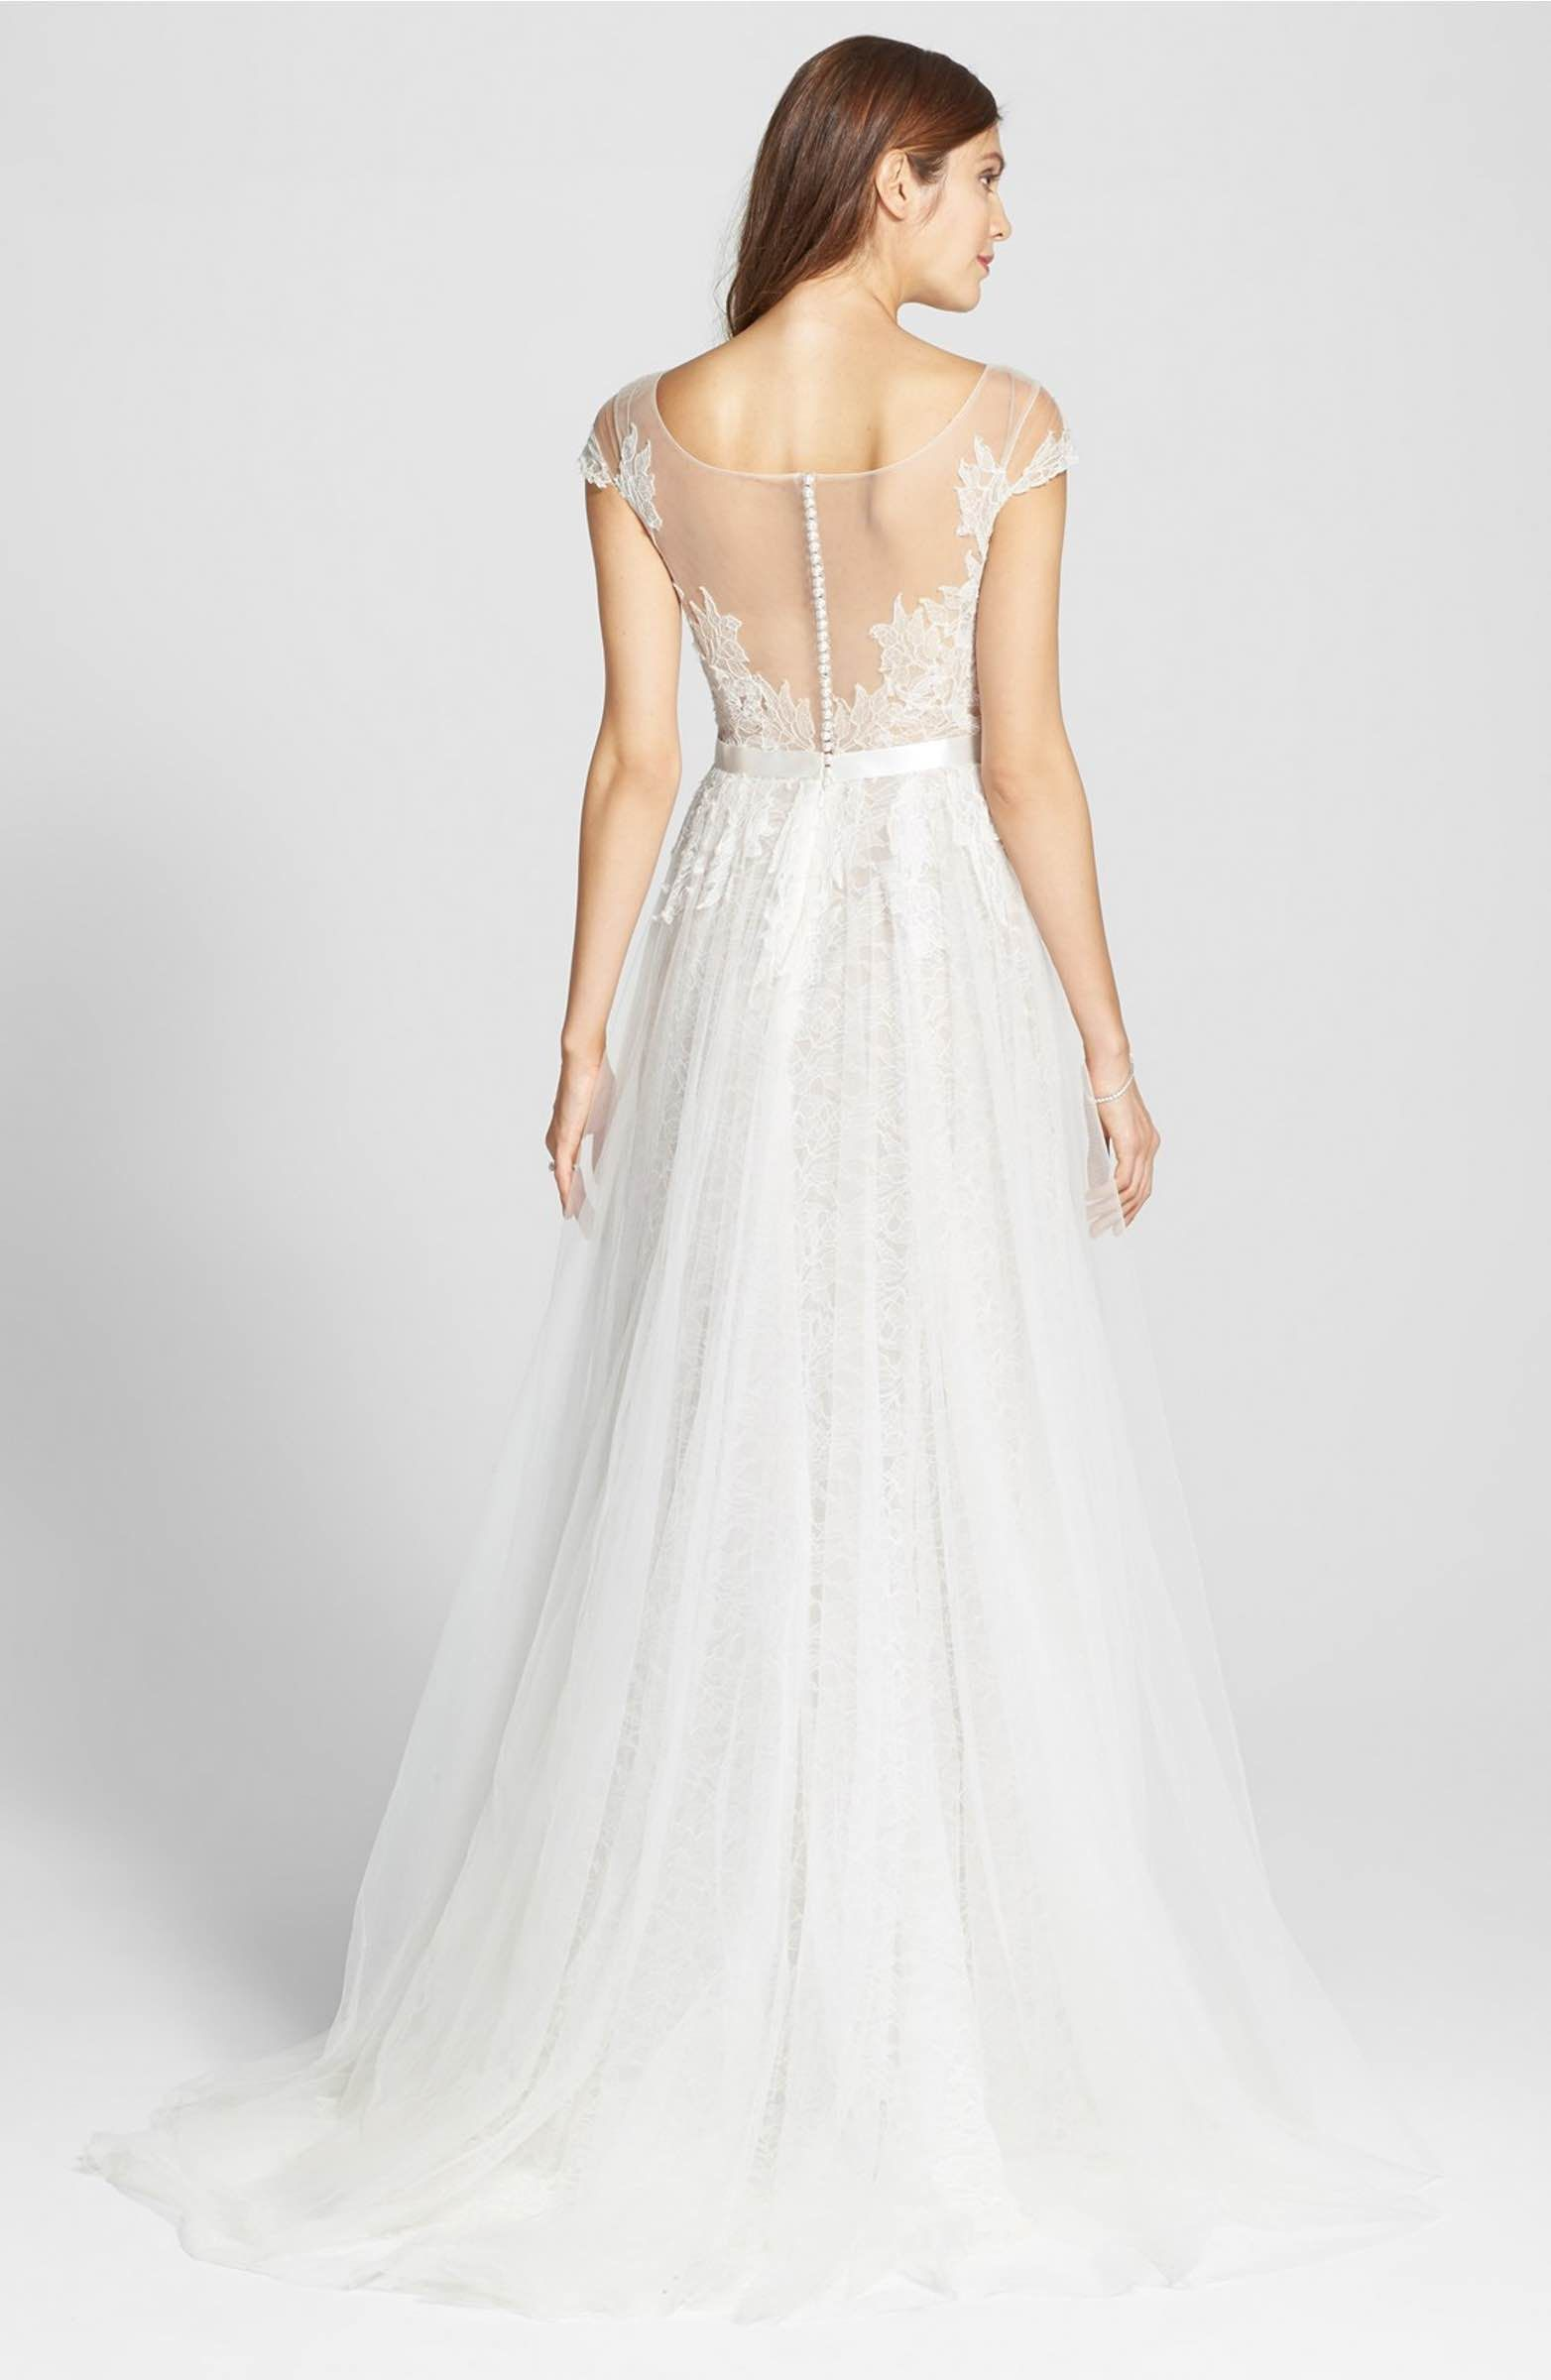 Main image watters farah tulle lace charmeuse gown in stores main image watters farah tulle lace charmeuse gown in stores only ombrellifo Image collections